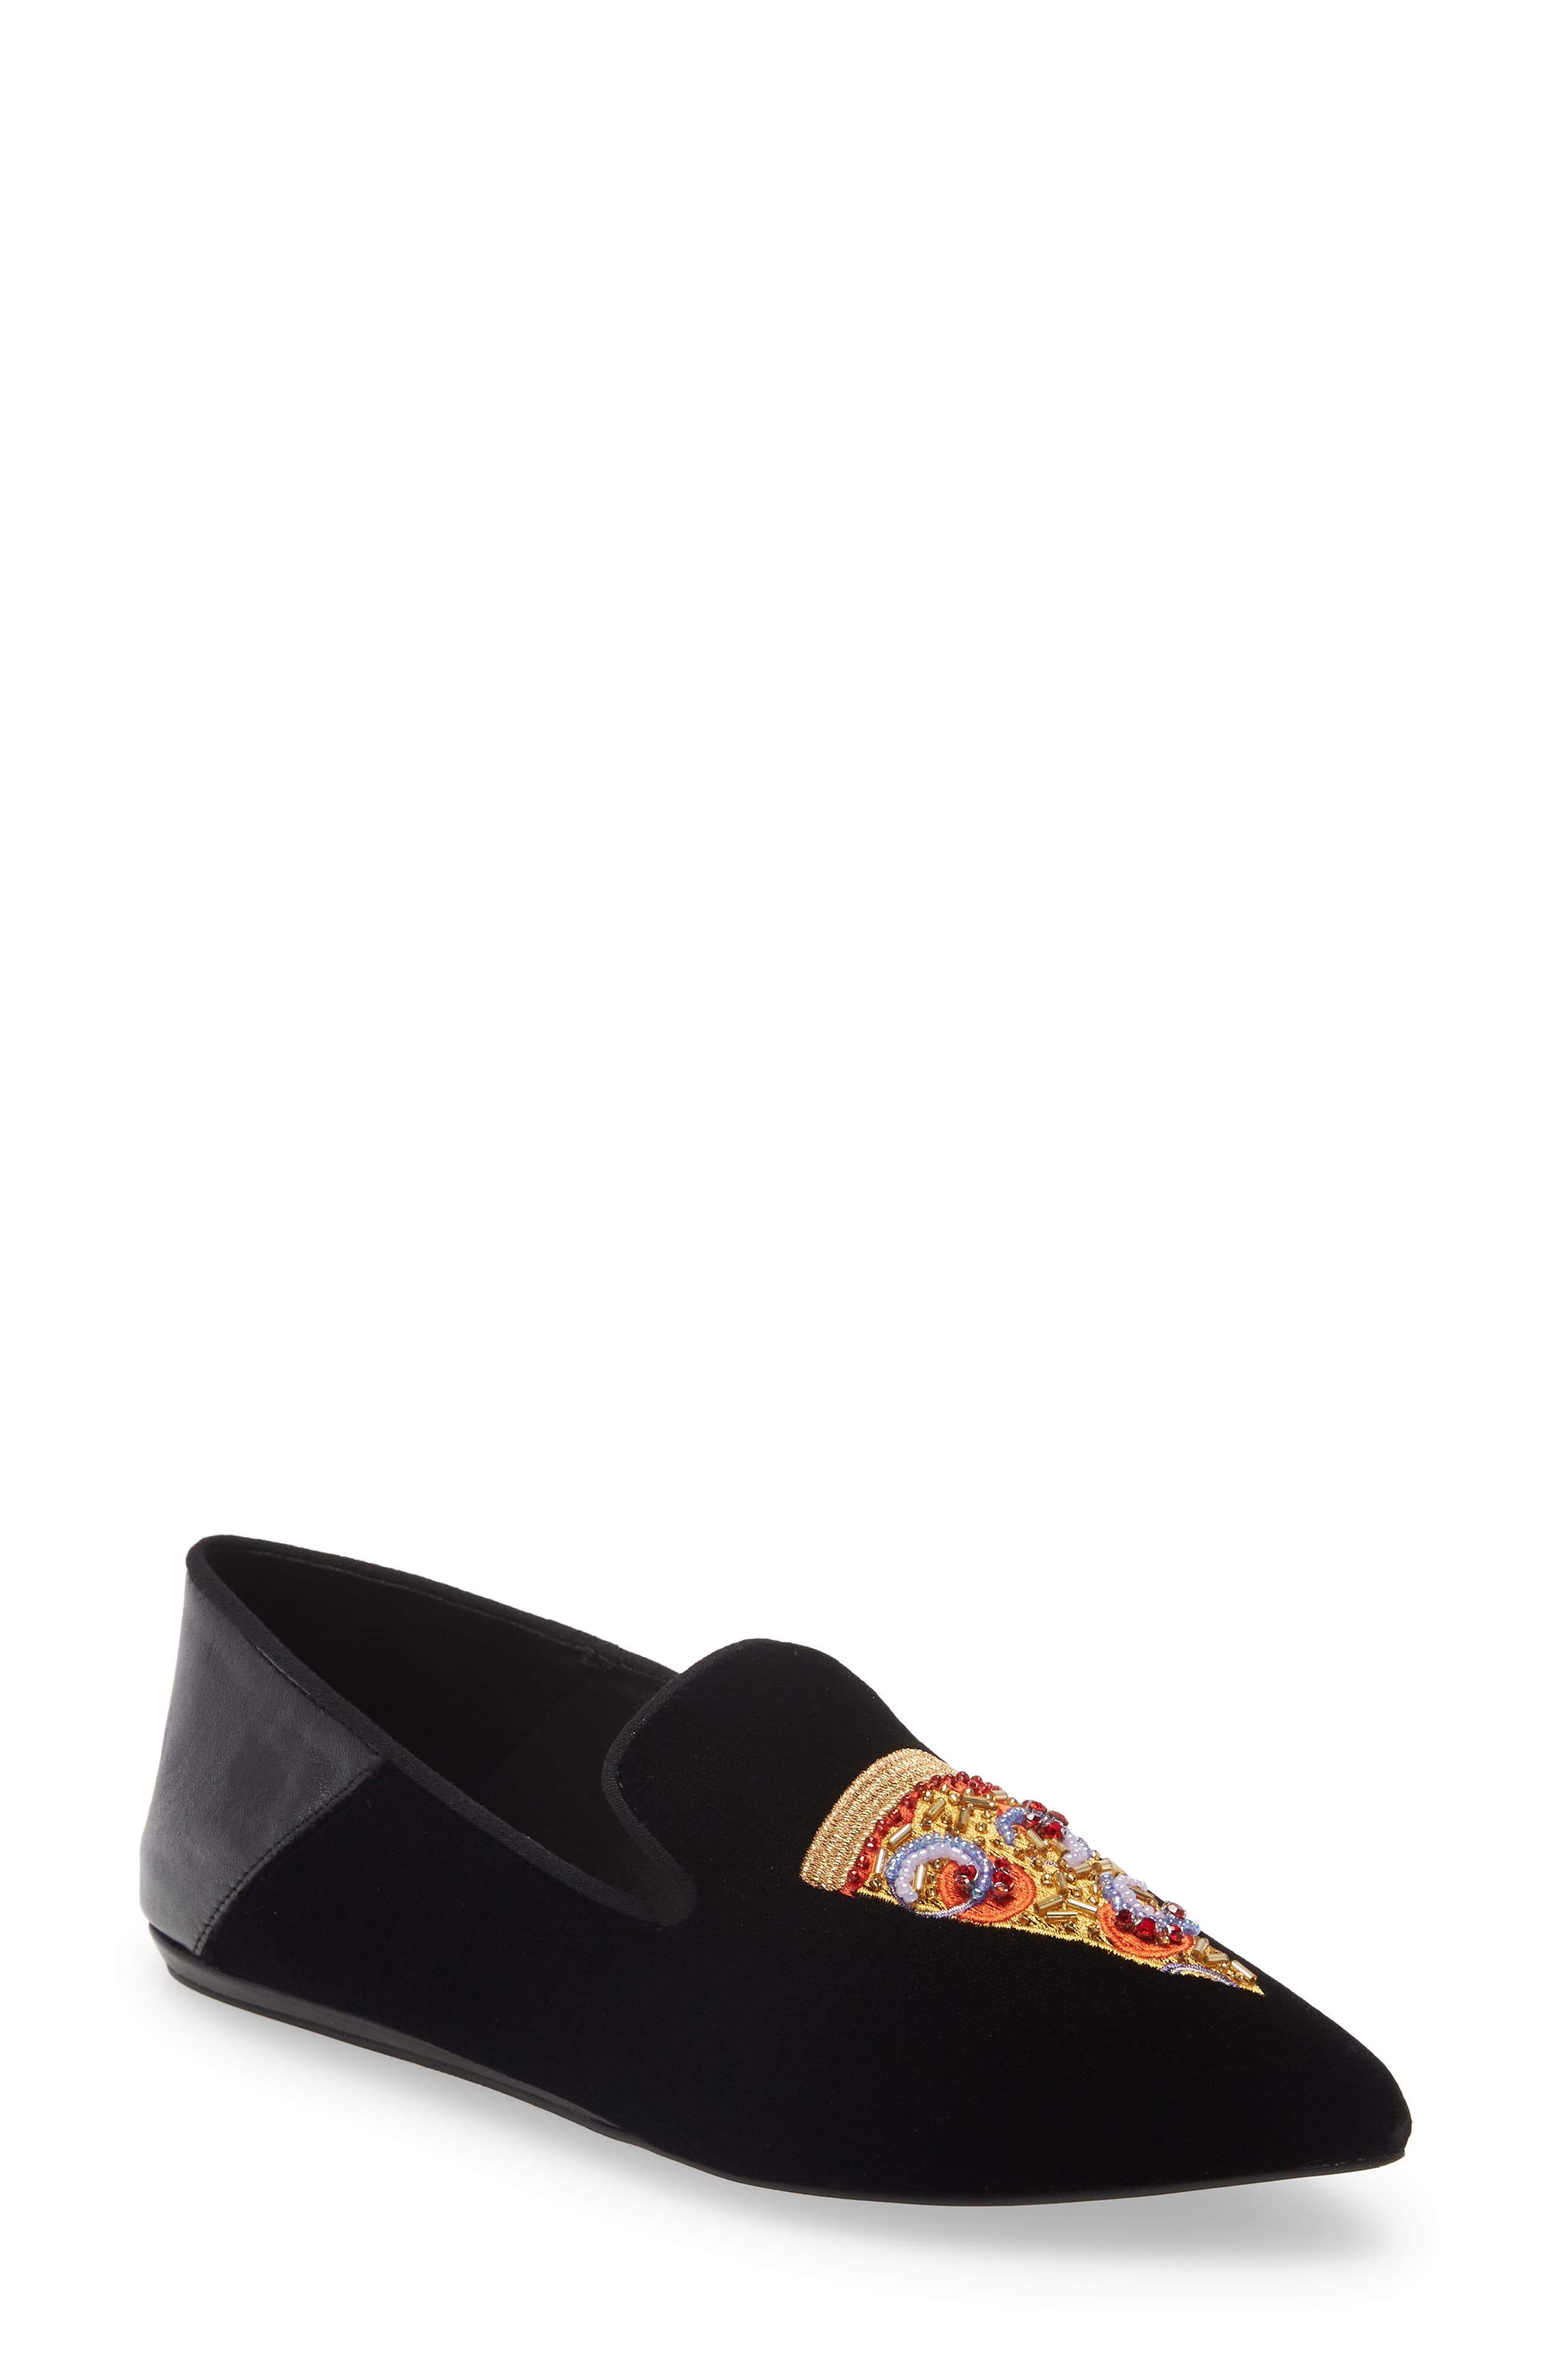 Junkfort Embroidered Pizza Flat